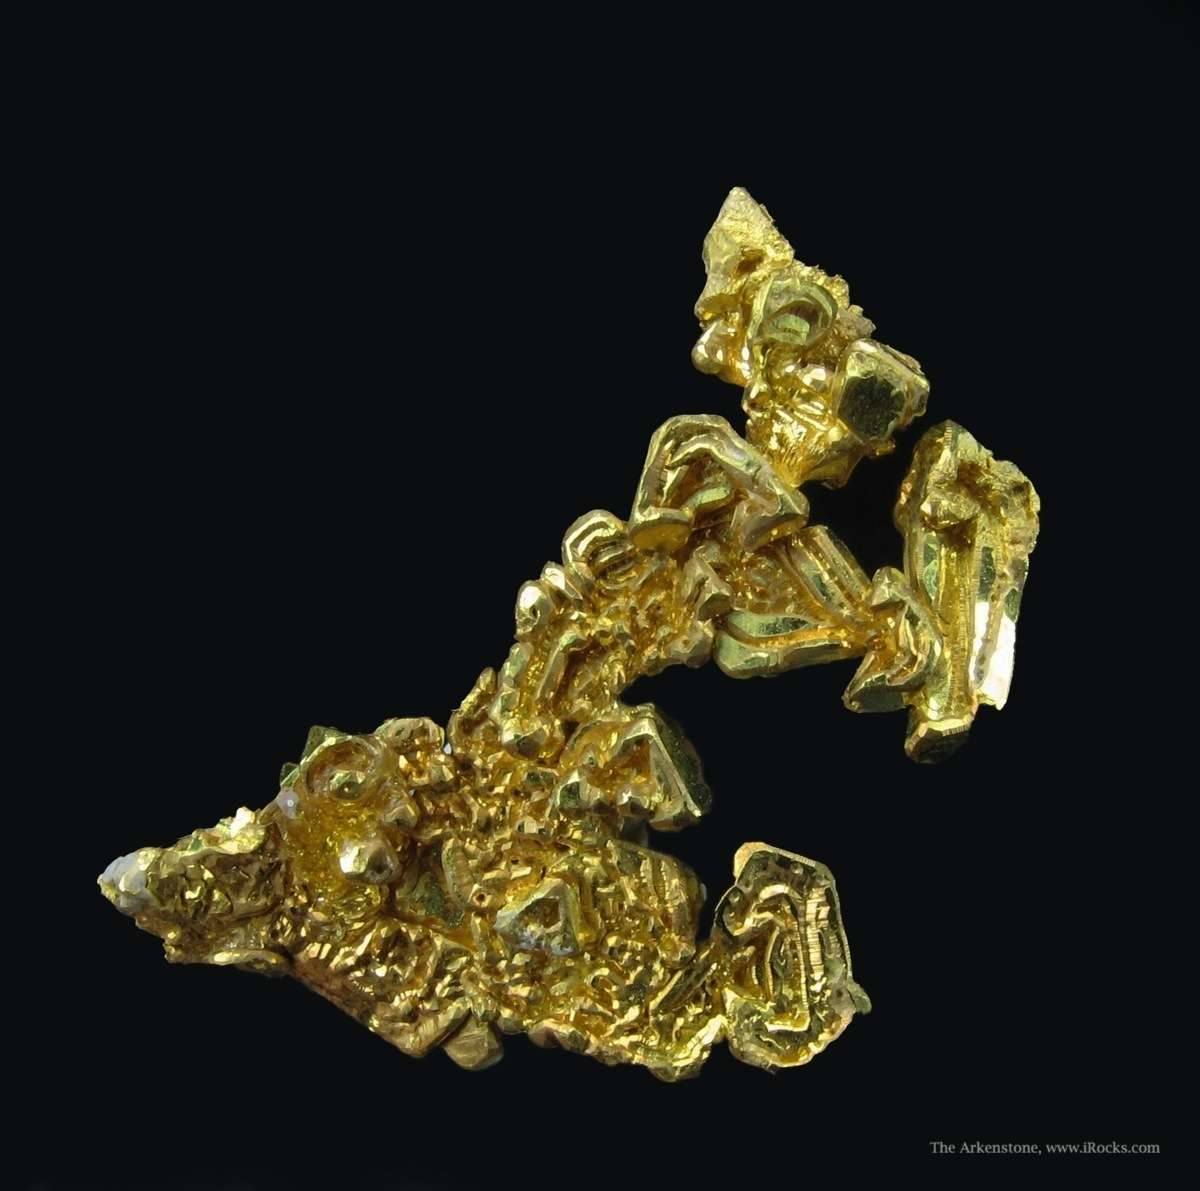 A striking cluster gleaming Gold crystals forming brilliant